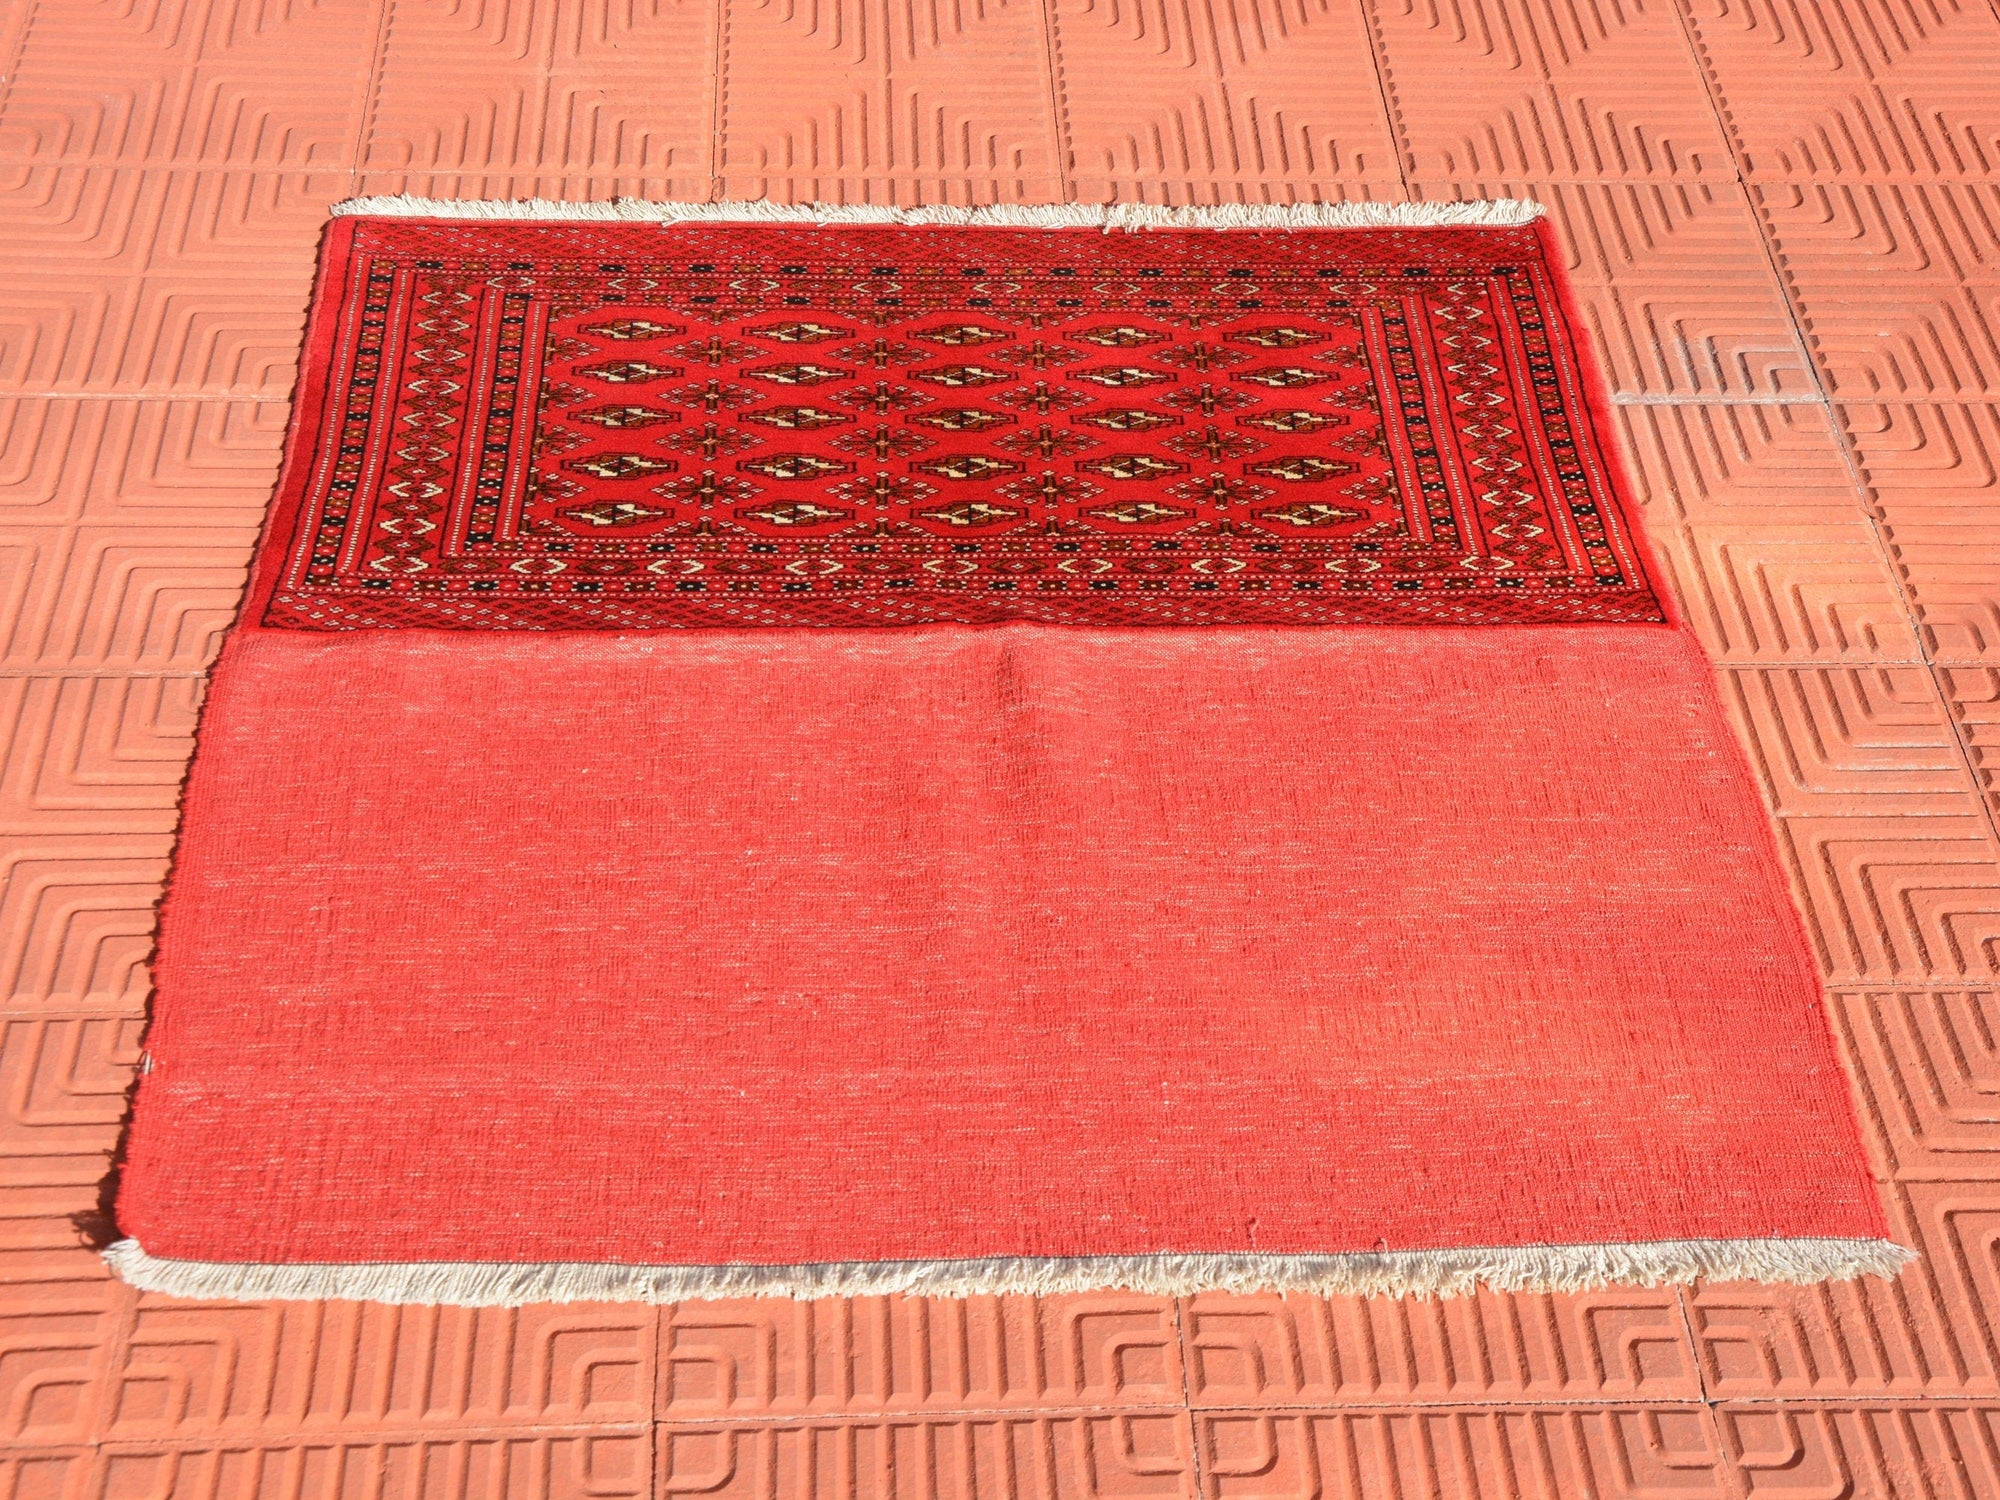 Red Square Rug, Small Wool Rug, Faded Turkish Rug, Hand Knotted Turkish Rug, Vintage Oriental Rug,Bath Rug,Turkey Rug, 3.2 x 3.2 Feet AG1652